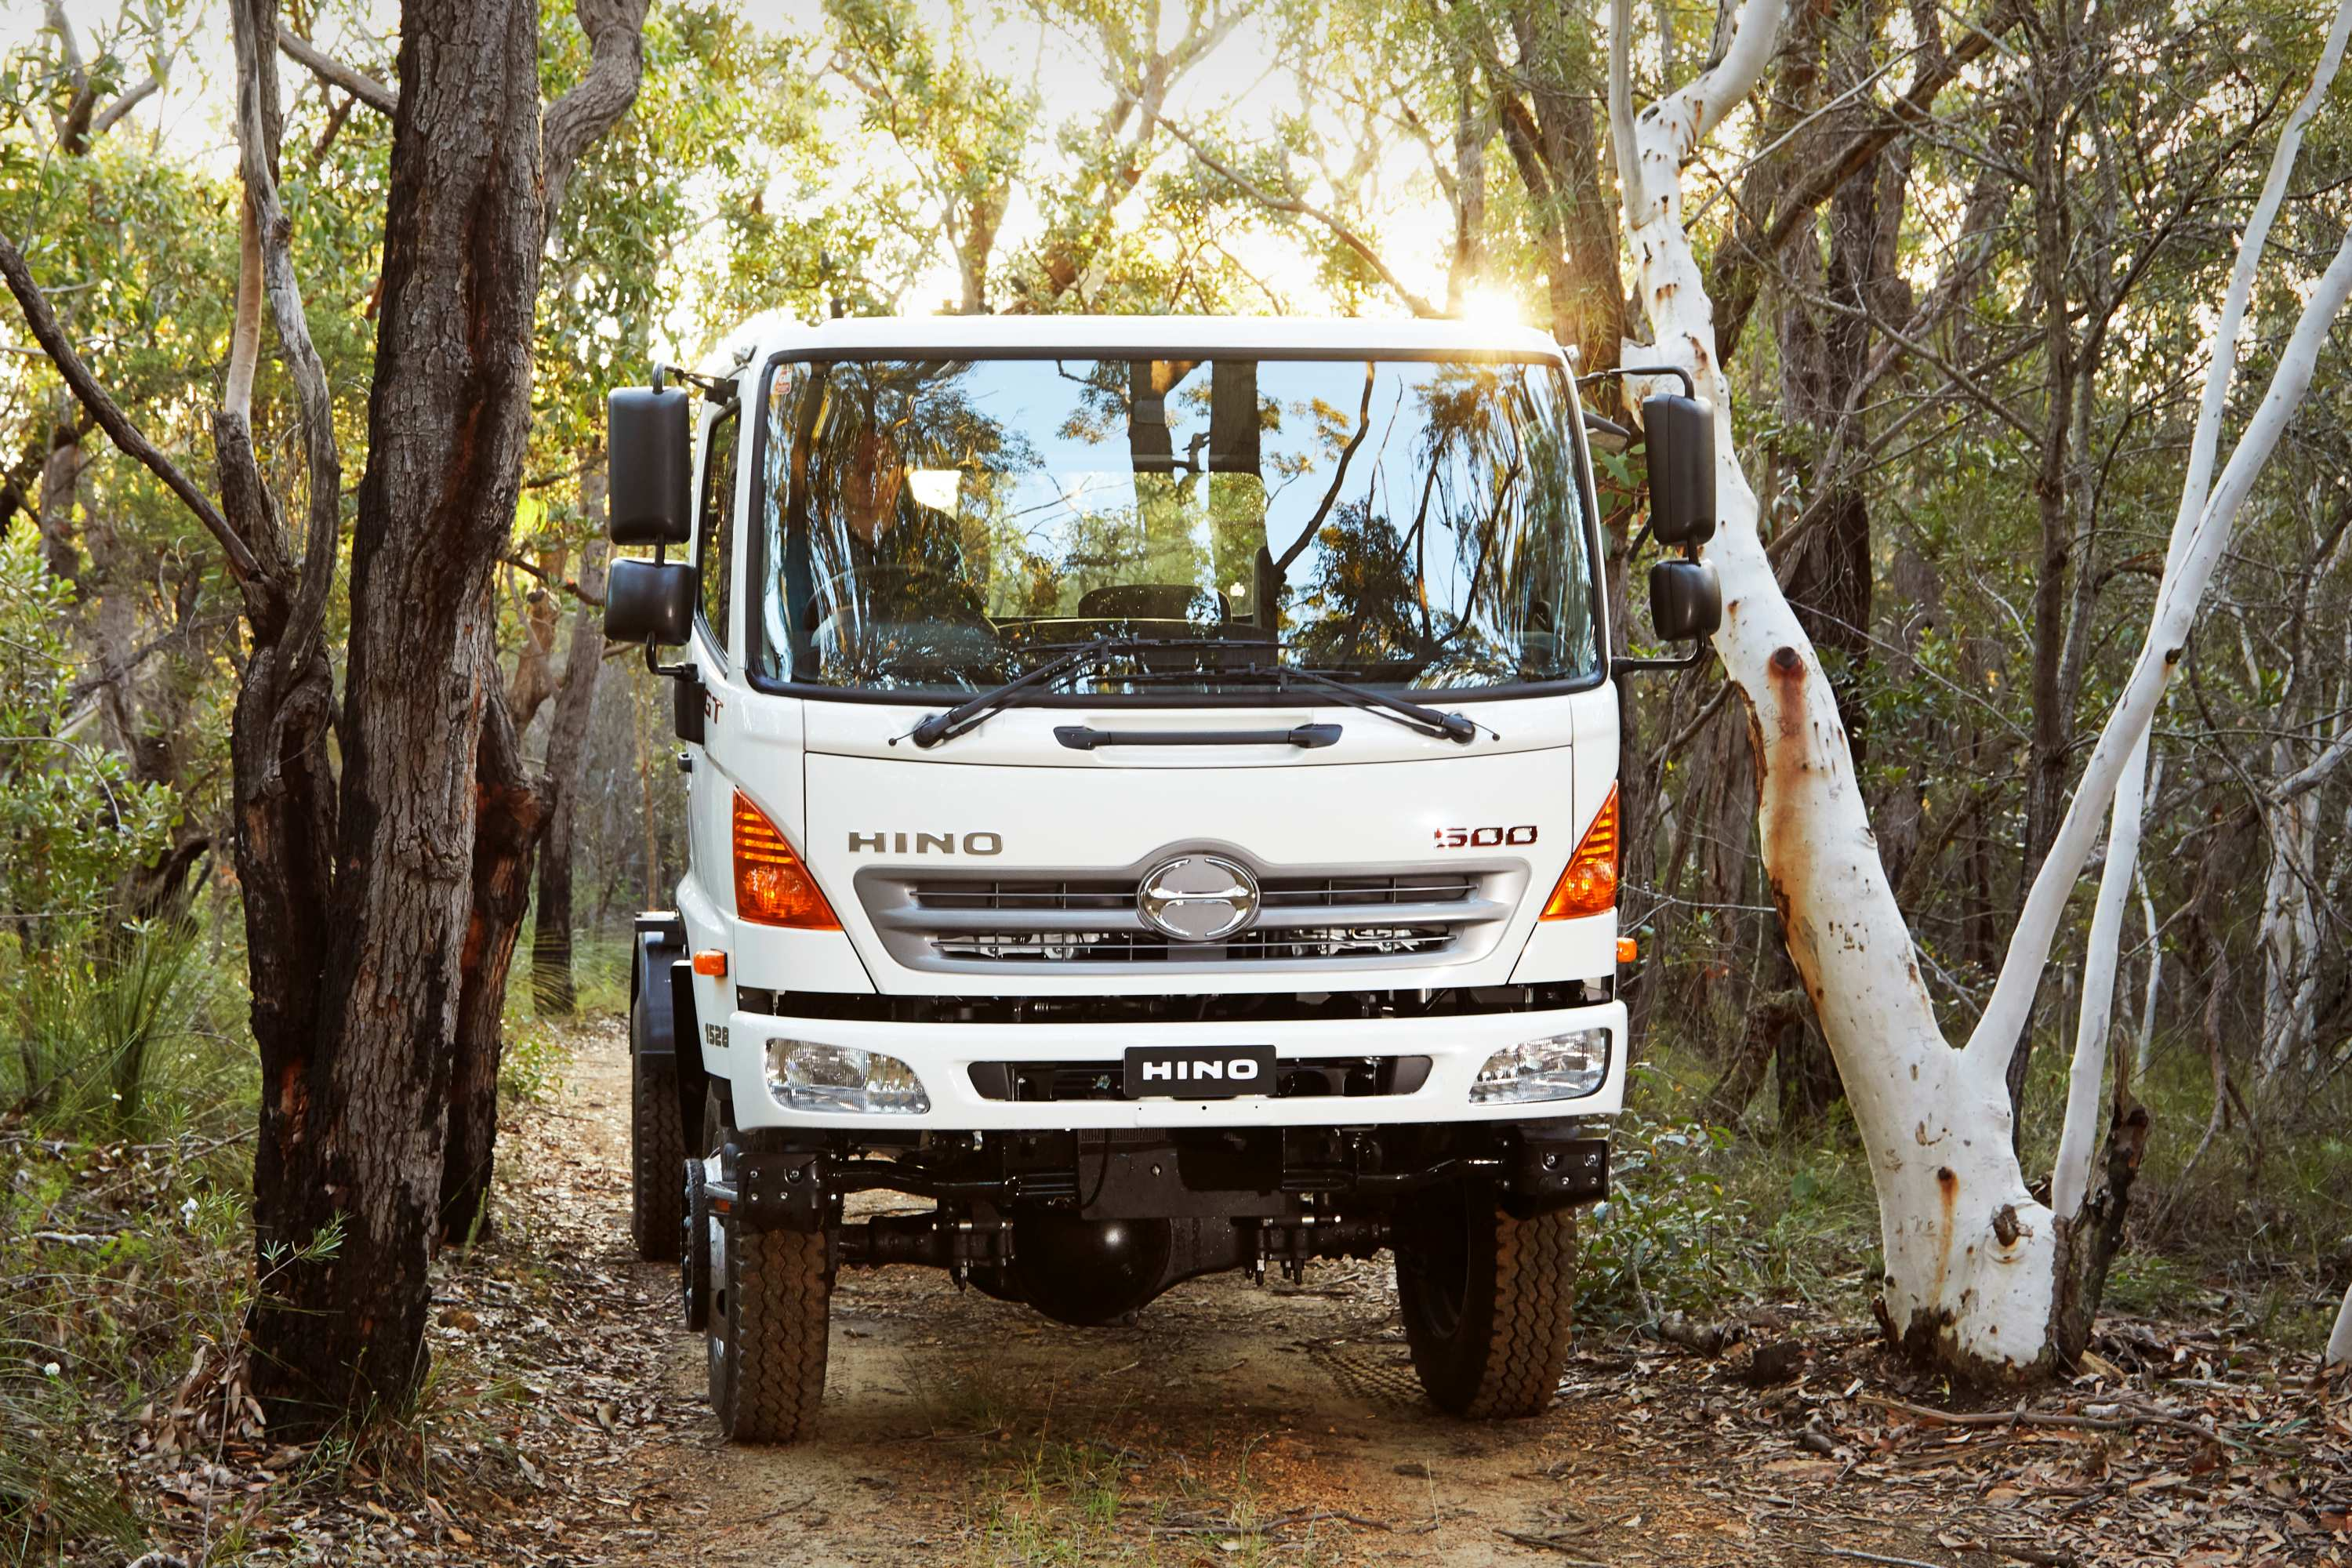 HINO 500 Series 1528 4X4 GT front 2